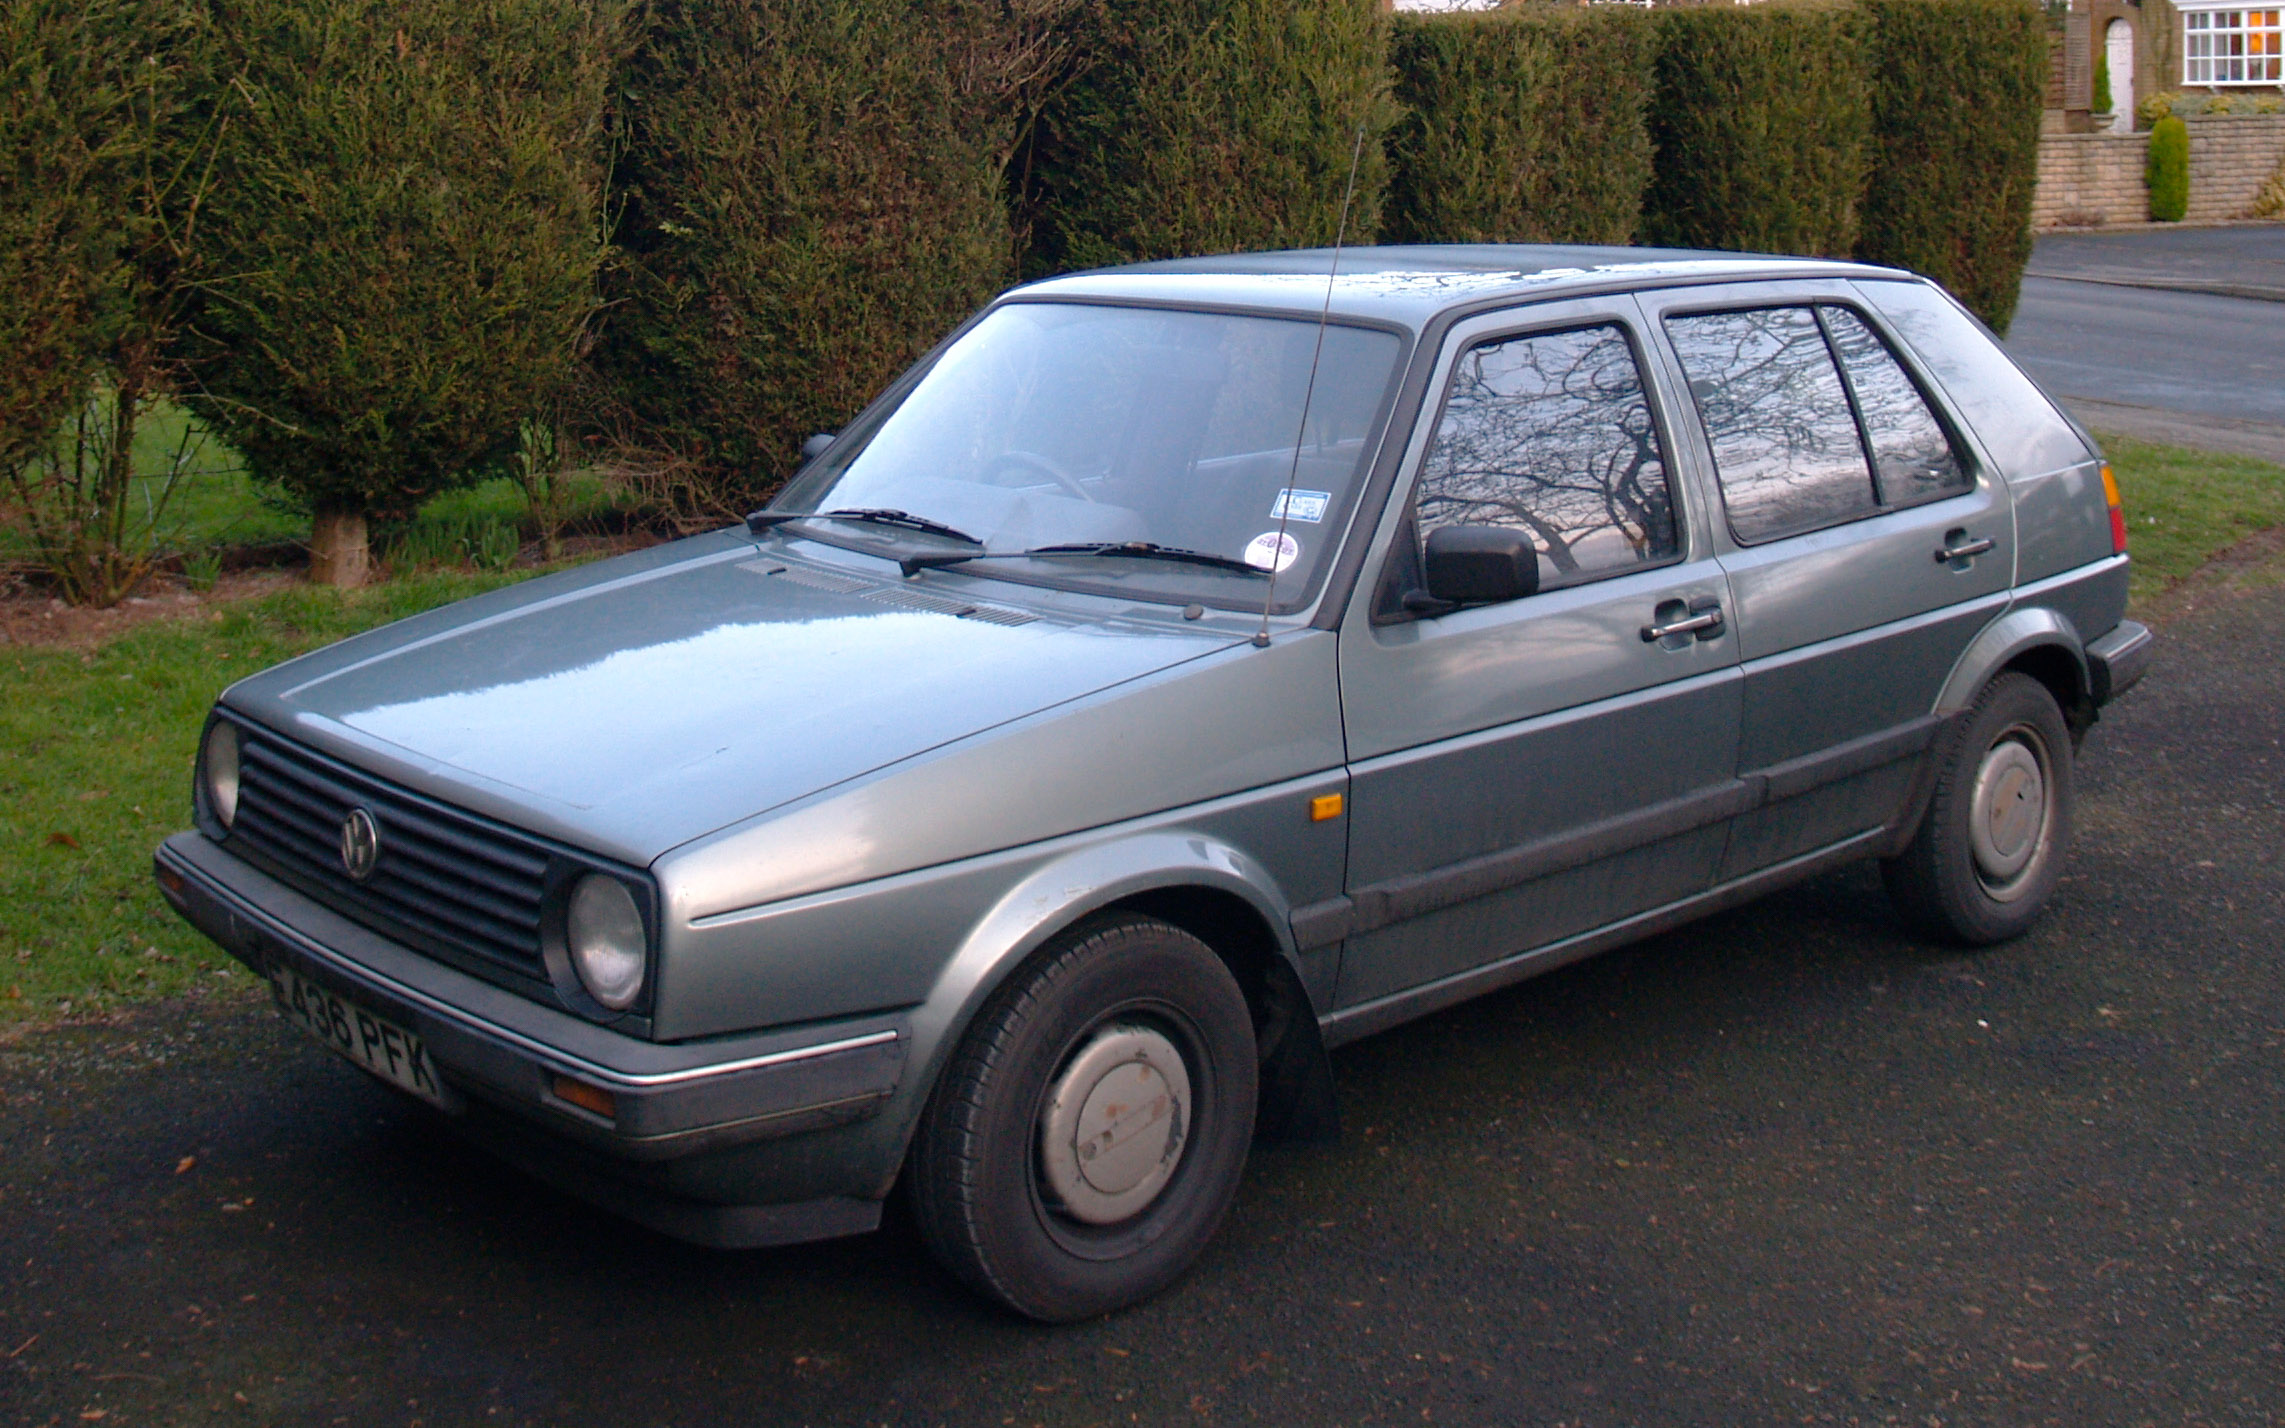 The One That Got Away: the pint-sized Golf that Jon Bentley squeezed Jeremy Clarkson into for a trip to the pub